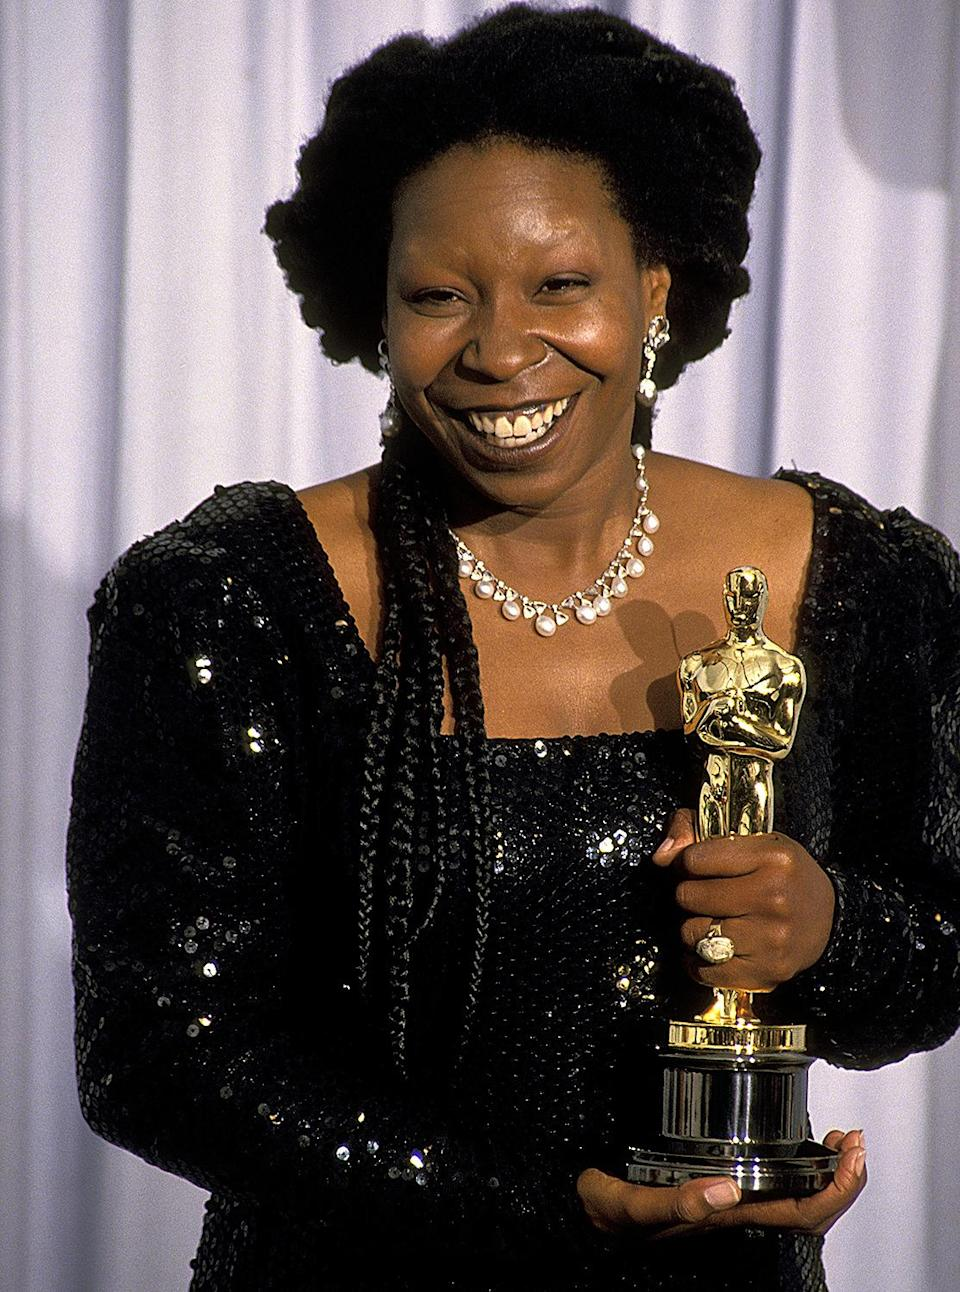 <p>Whoopi Goldberg won the Oscar for Best Supporting Actor for her performance in <em>Ghost. </em>She's the first Black actor to have received Academy Award nominations in both the Best Actress and Best Supporting Actress categories. </p>